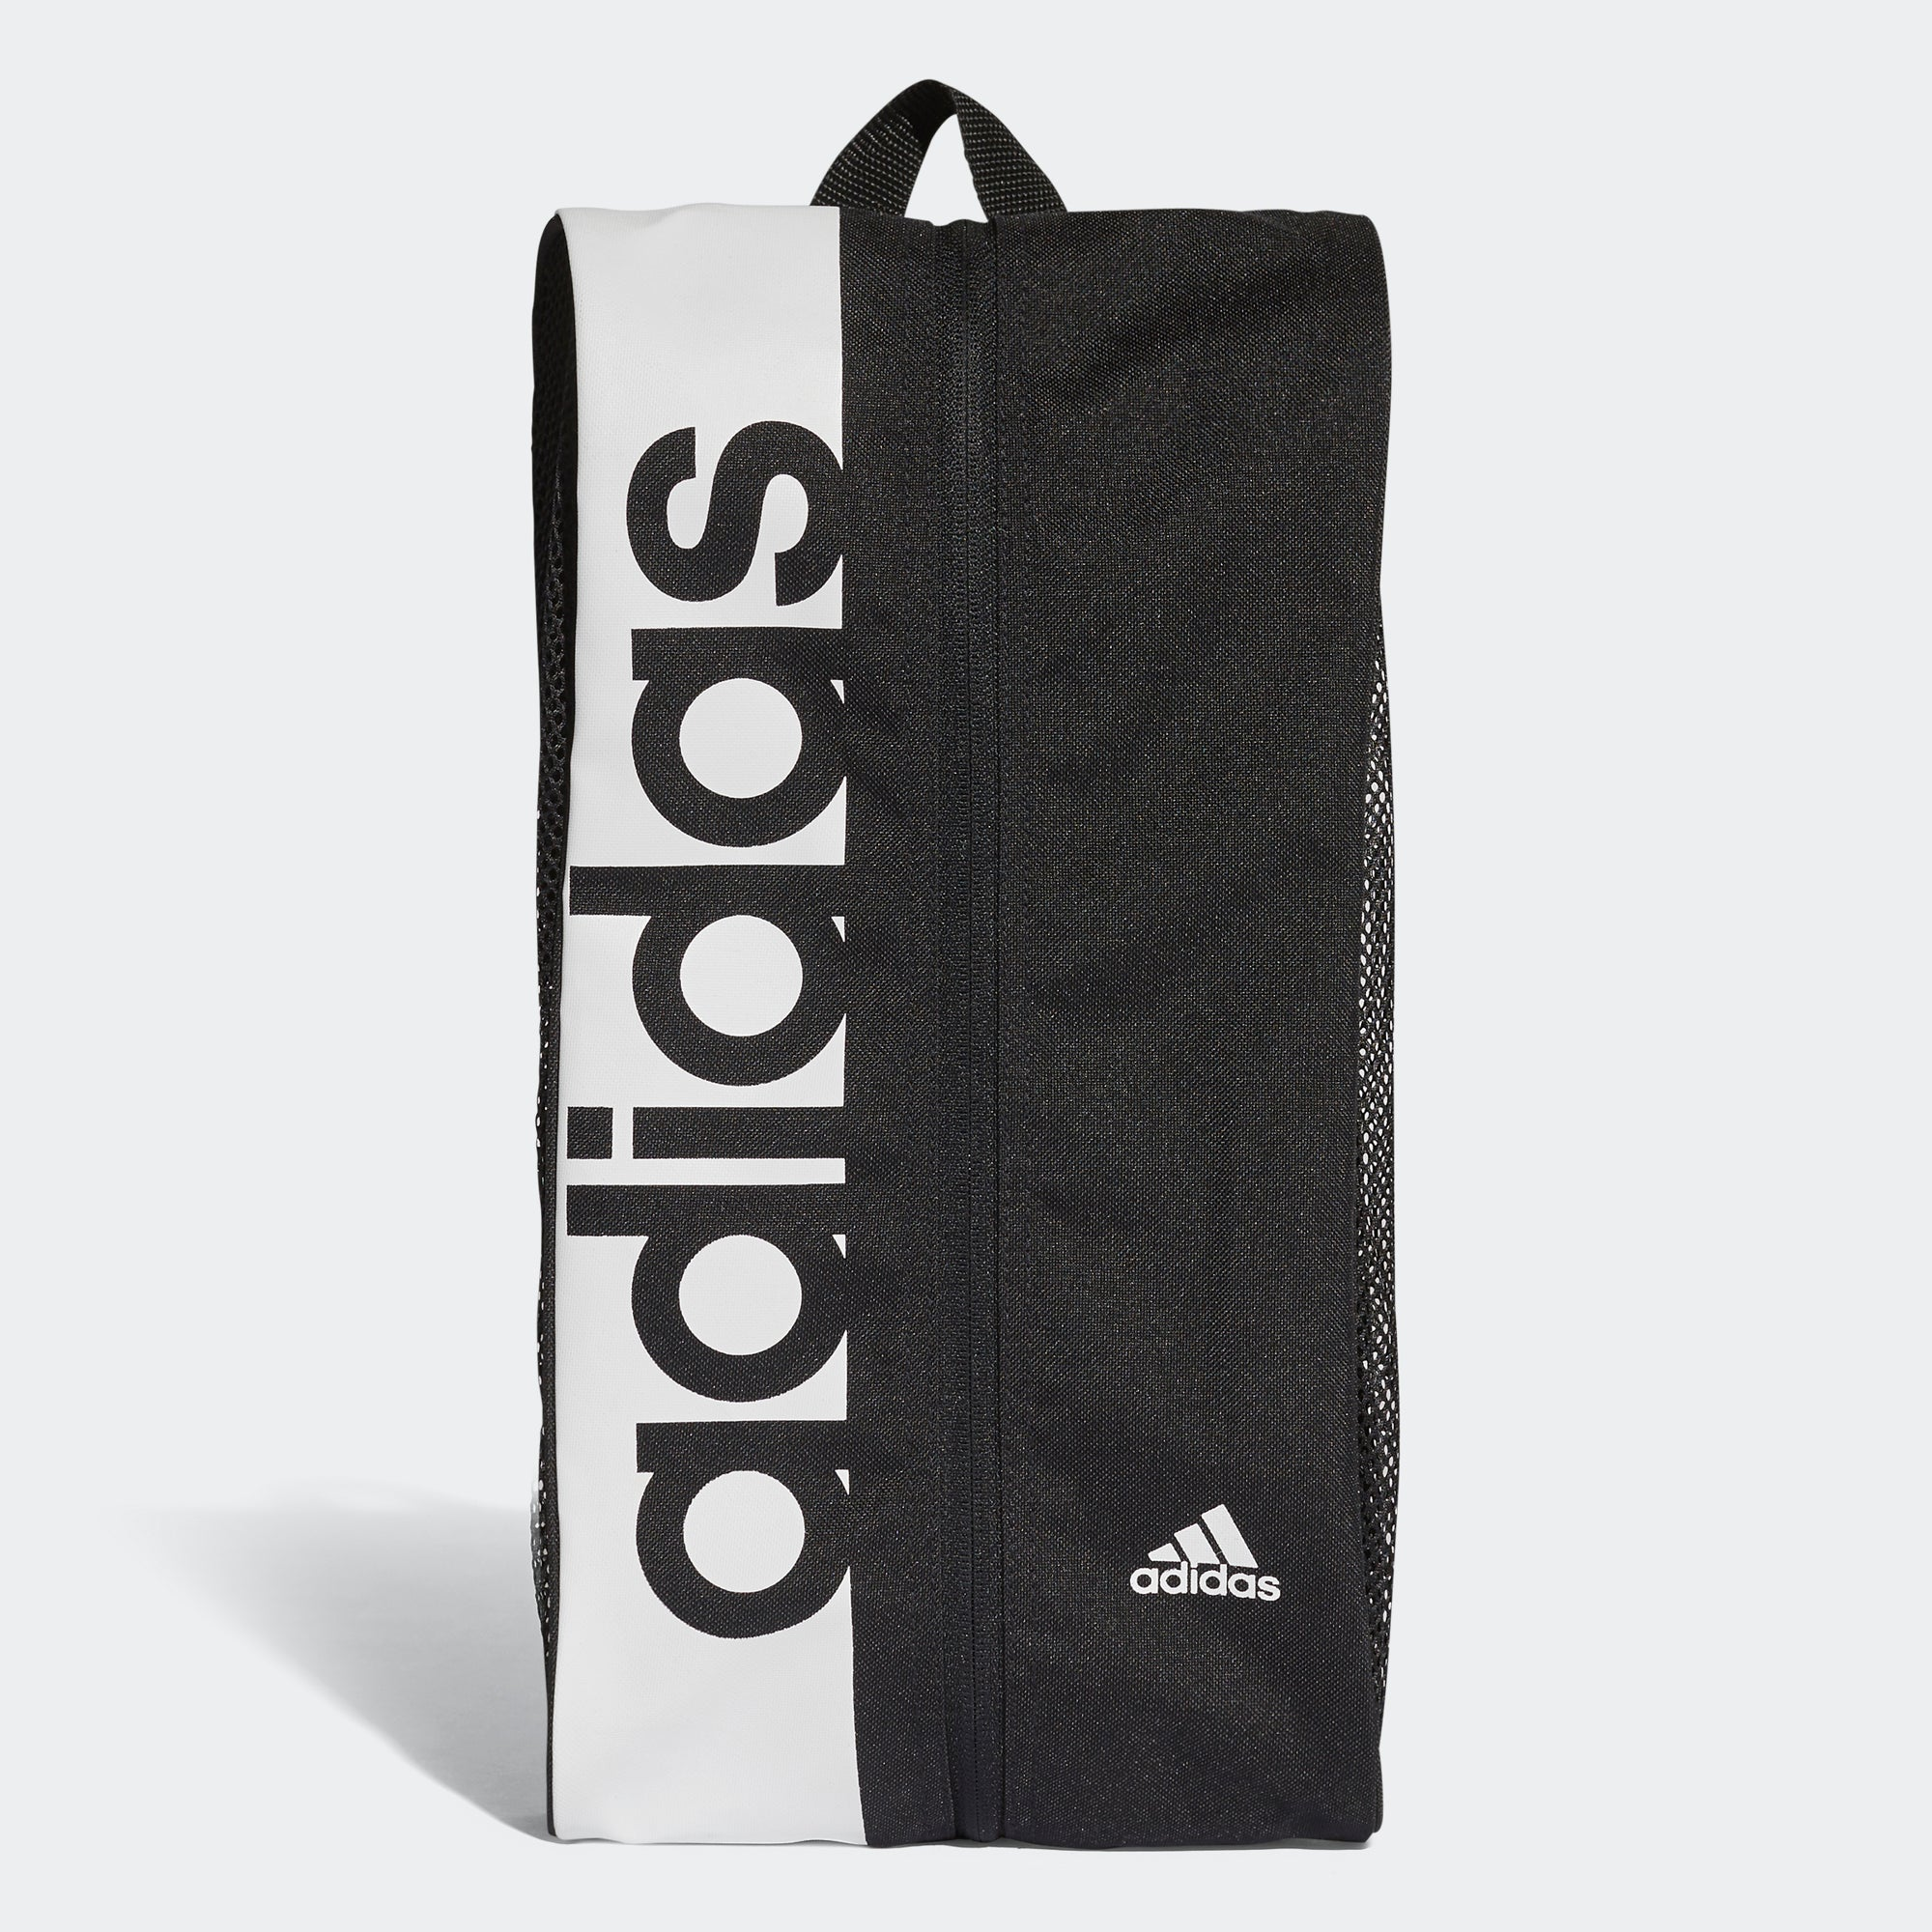 34ff7625232 Buy adidas Linear Performance Shoe Bag, Black Online in Singapore   Royal  Sporting House